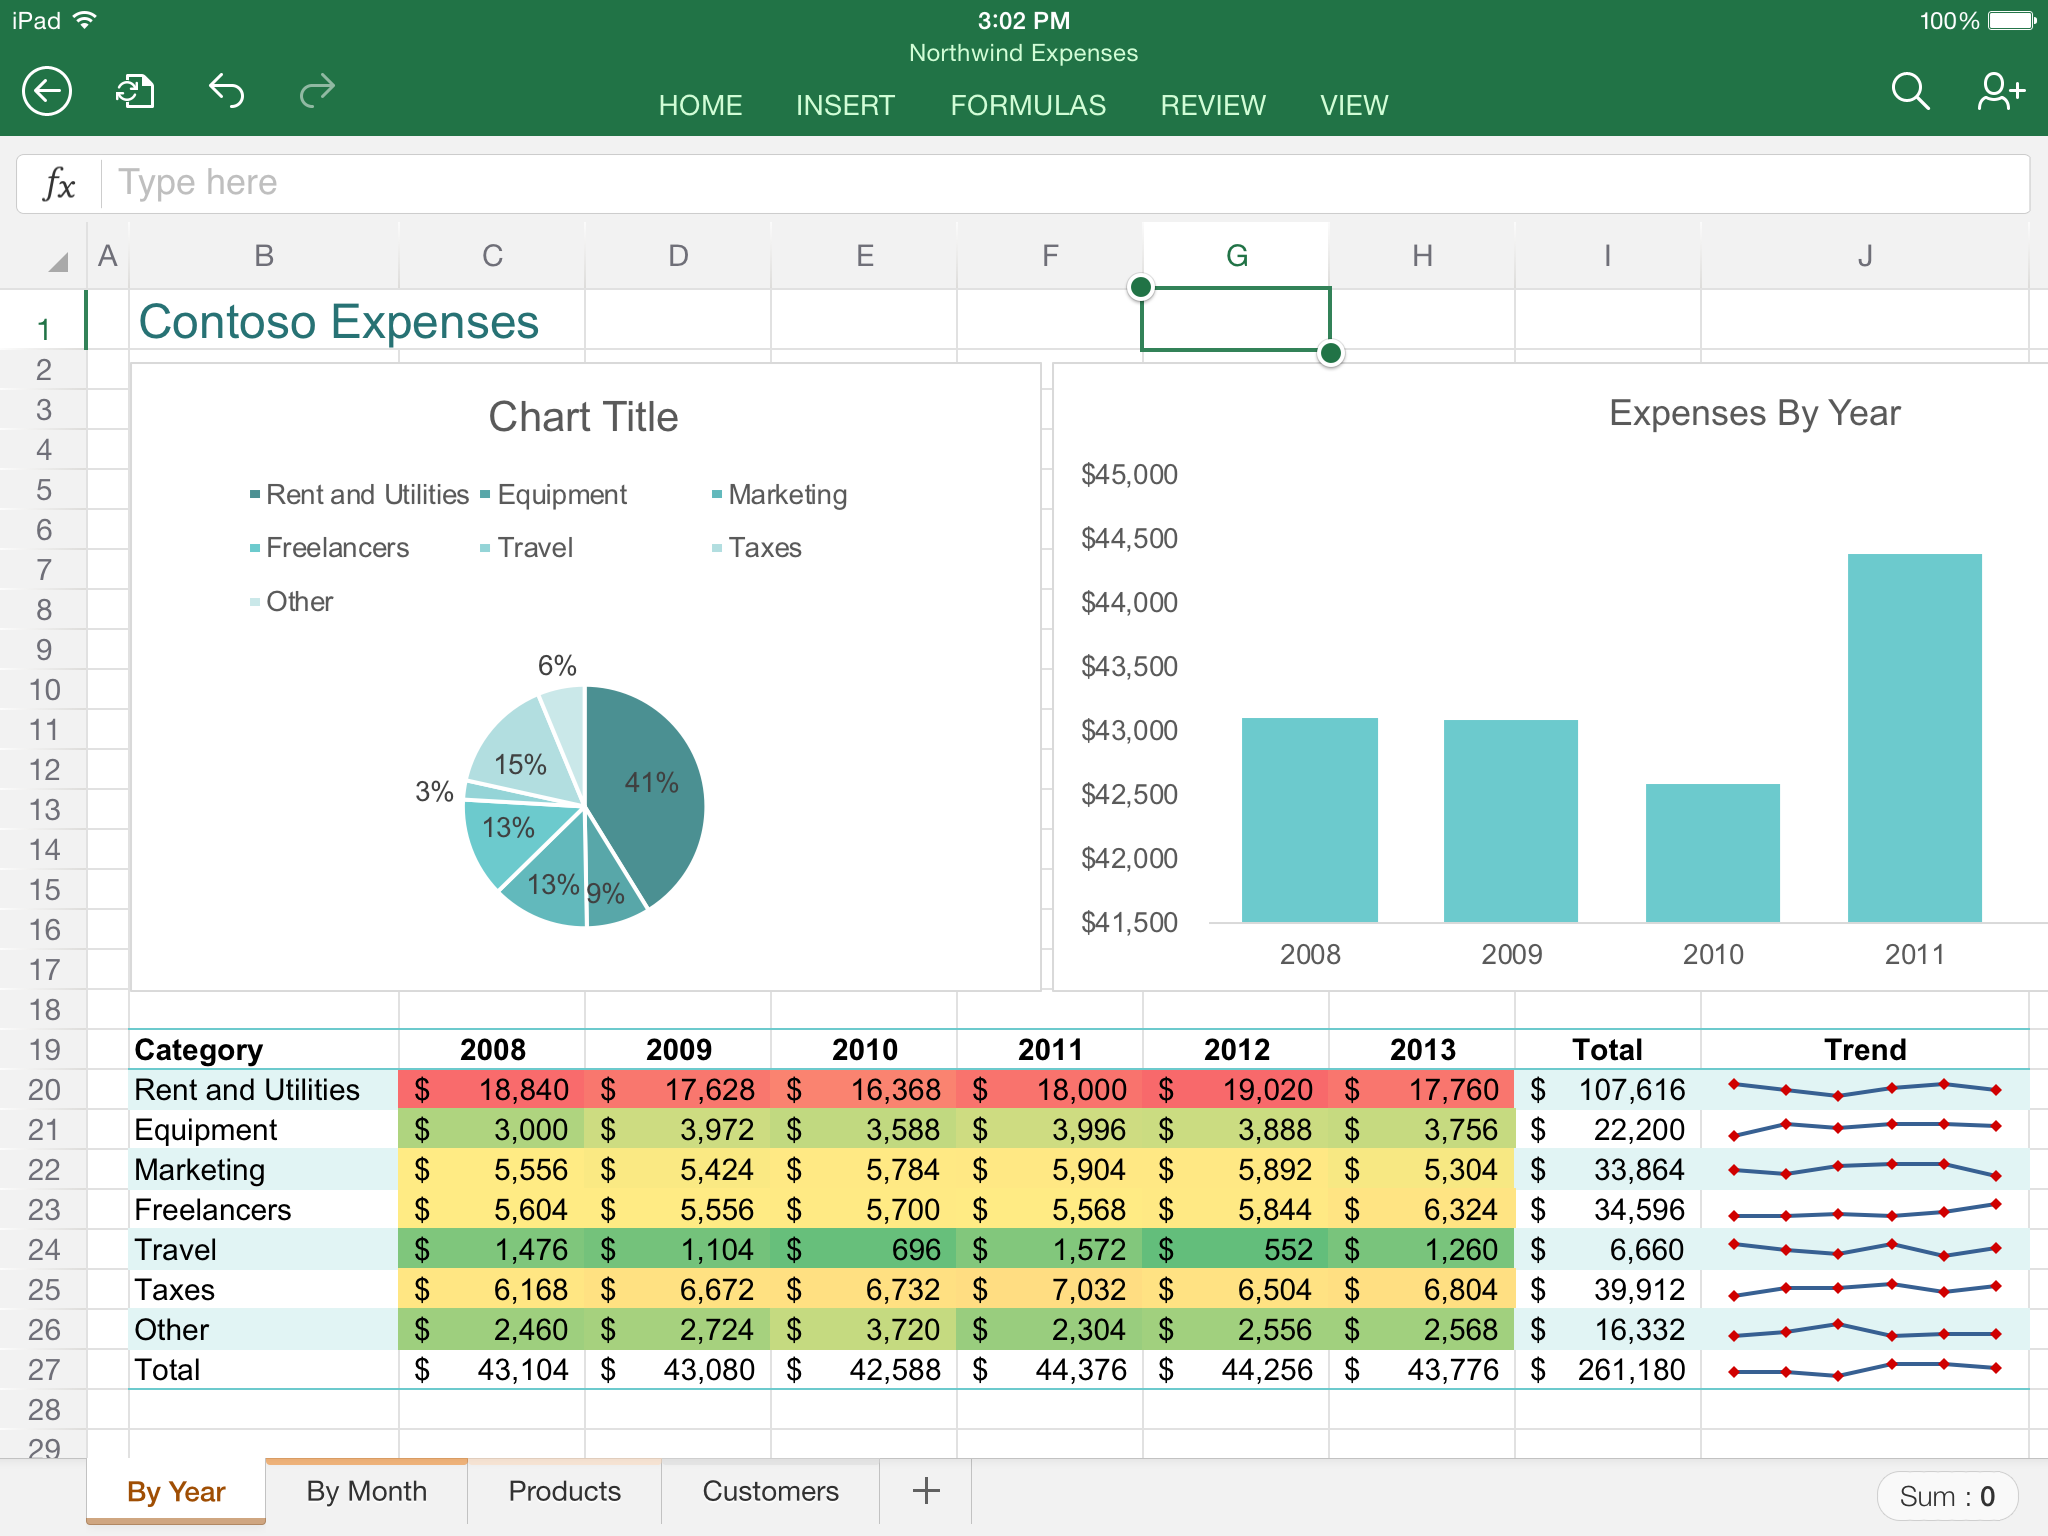 Ediblewildsus  Outstanding App Highlight Excel  Mobile Digital Now With Goodlooking Excel In Action With Easy On The Eye Excel Roofing Also How To Read Excel File In Java In Addition How To Find Correlation Coefficient In Excel And Excel Air Conditioning As Well As Excel Testing Solutions Additionally Microsoft Excel  From Youstonybrookedu With Ediblewildsus  Goodlooking App Highlight Excel  Mobile Digital Now With Easy On The Eye Excel In Action And Outstanding Excel Roofing Also How To Read Excel File In Java In Addition How To Find Correlation Coefficient In Excel From Youstonybrookedu